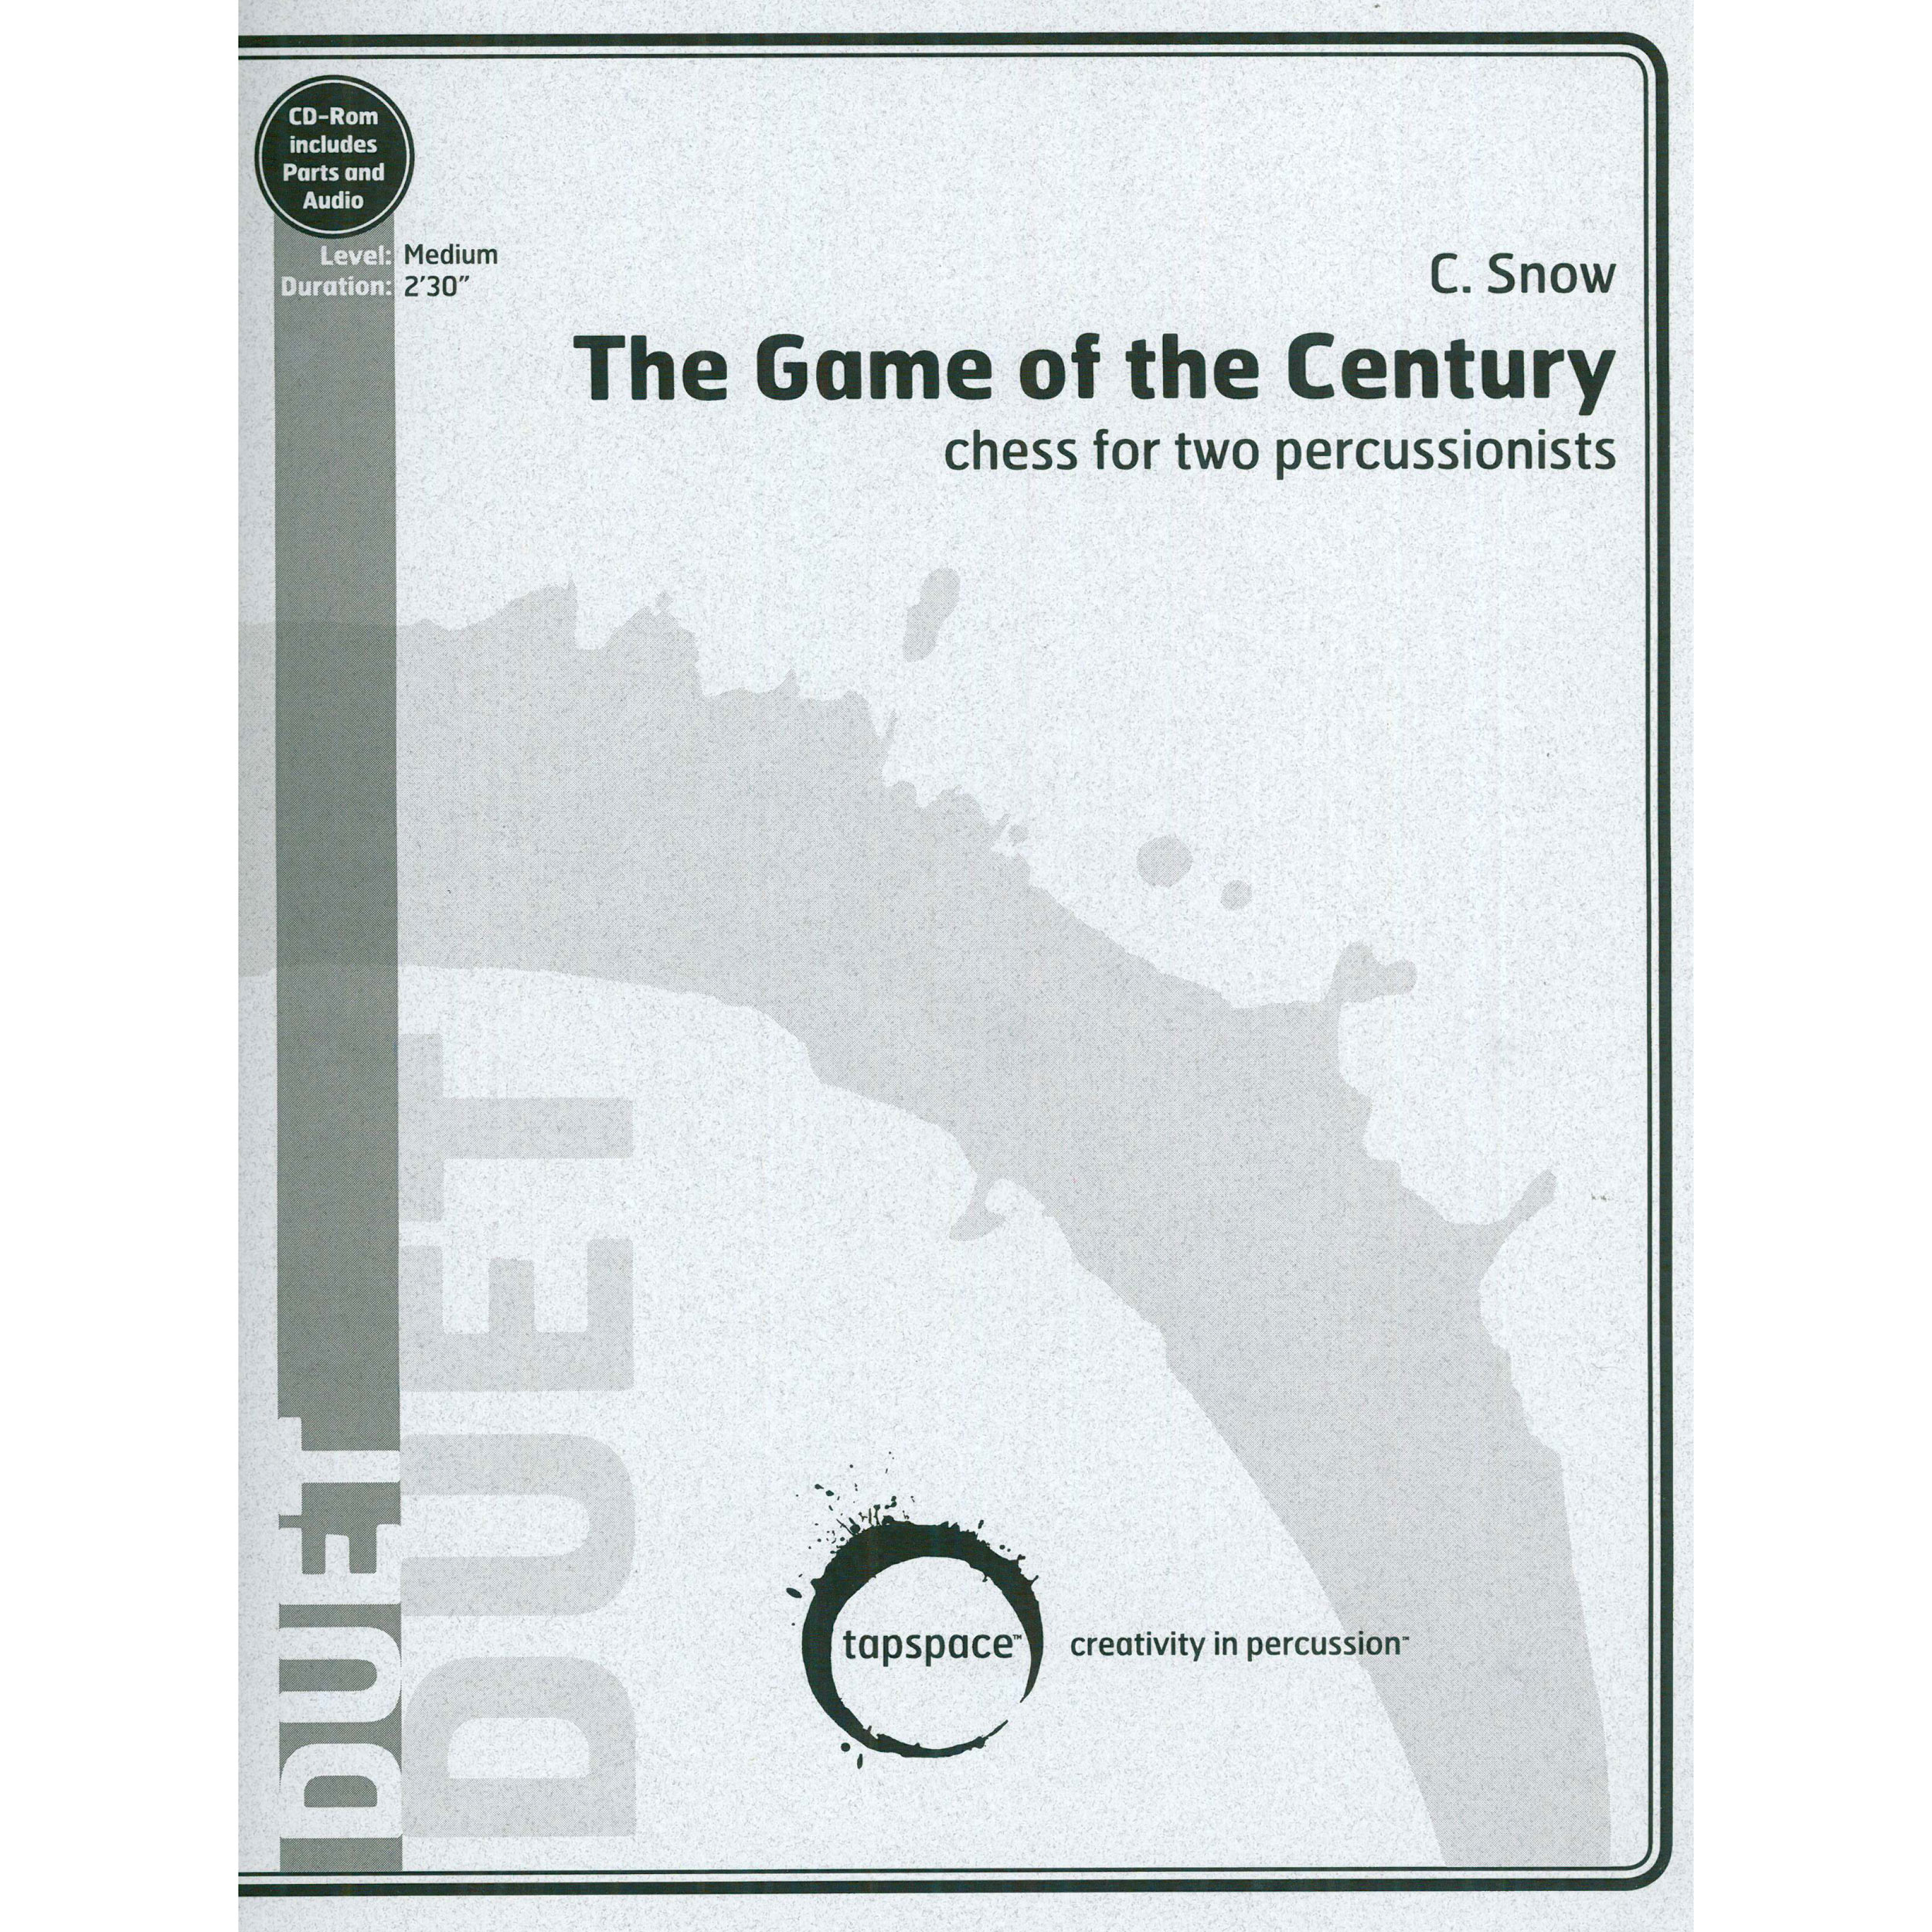 The Game of the Century by C. Snow